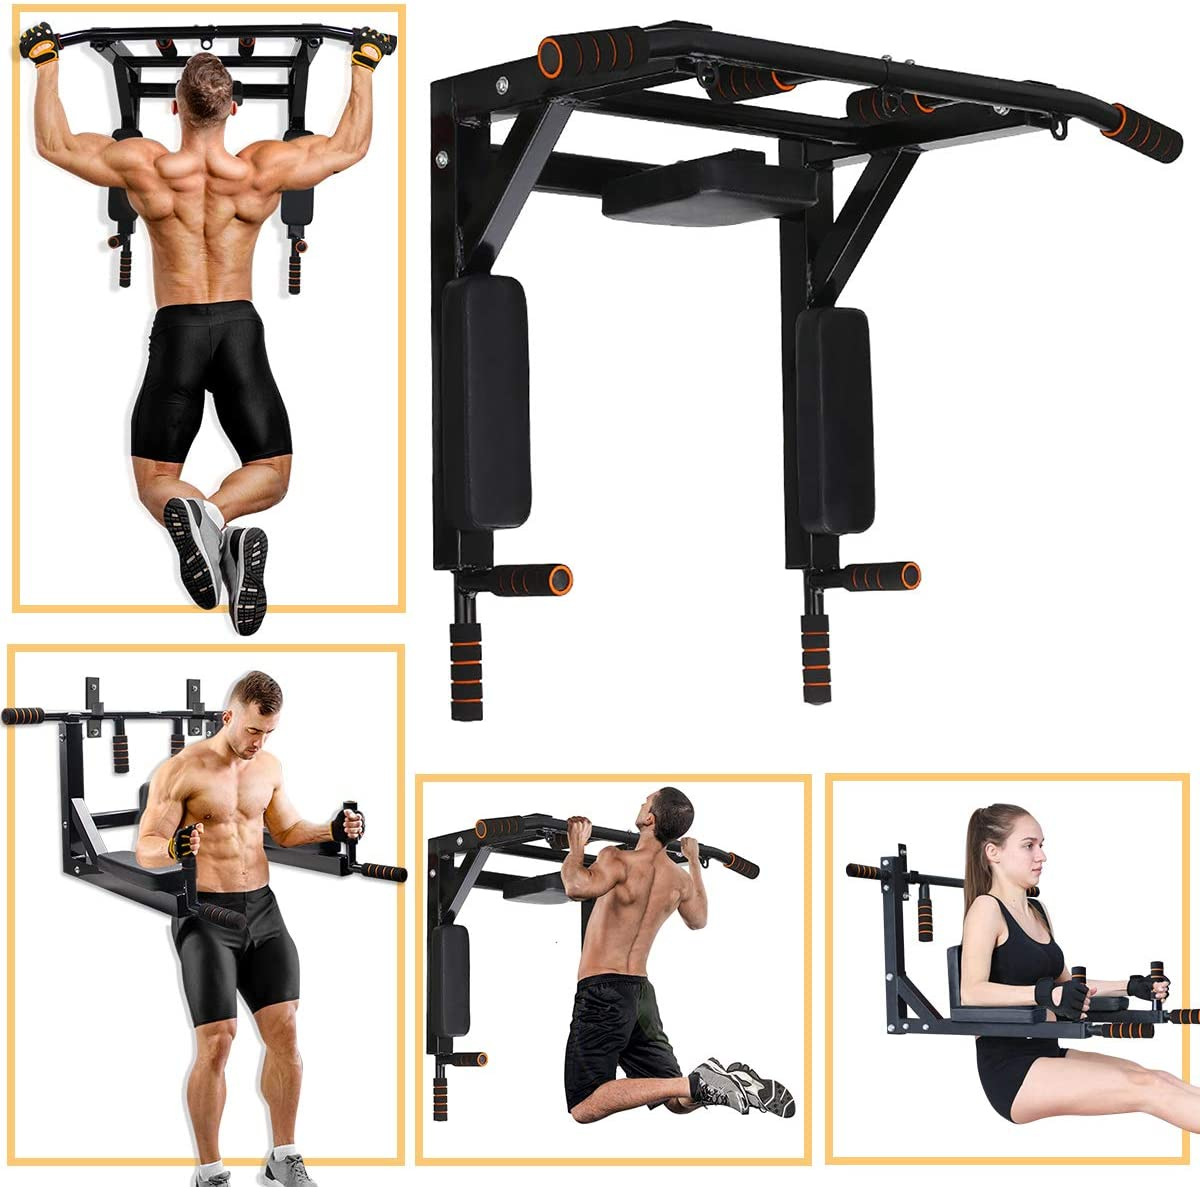 Slsy Multifunctional Wall Mounted Pull Up Bar